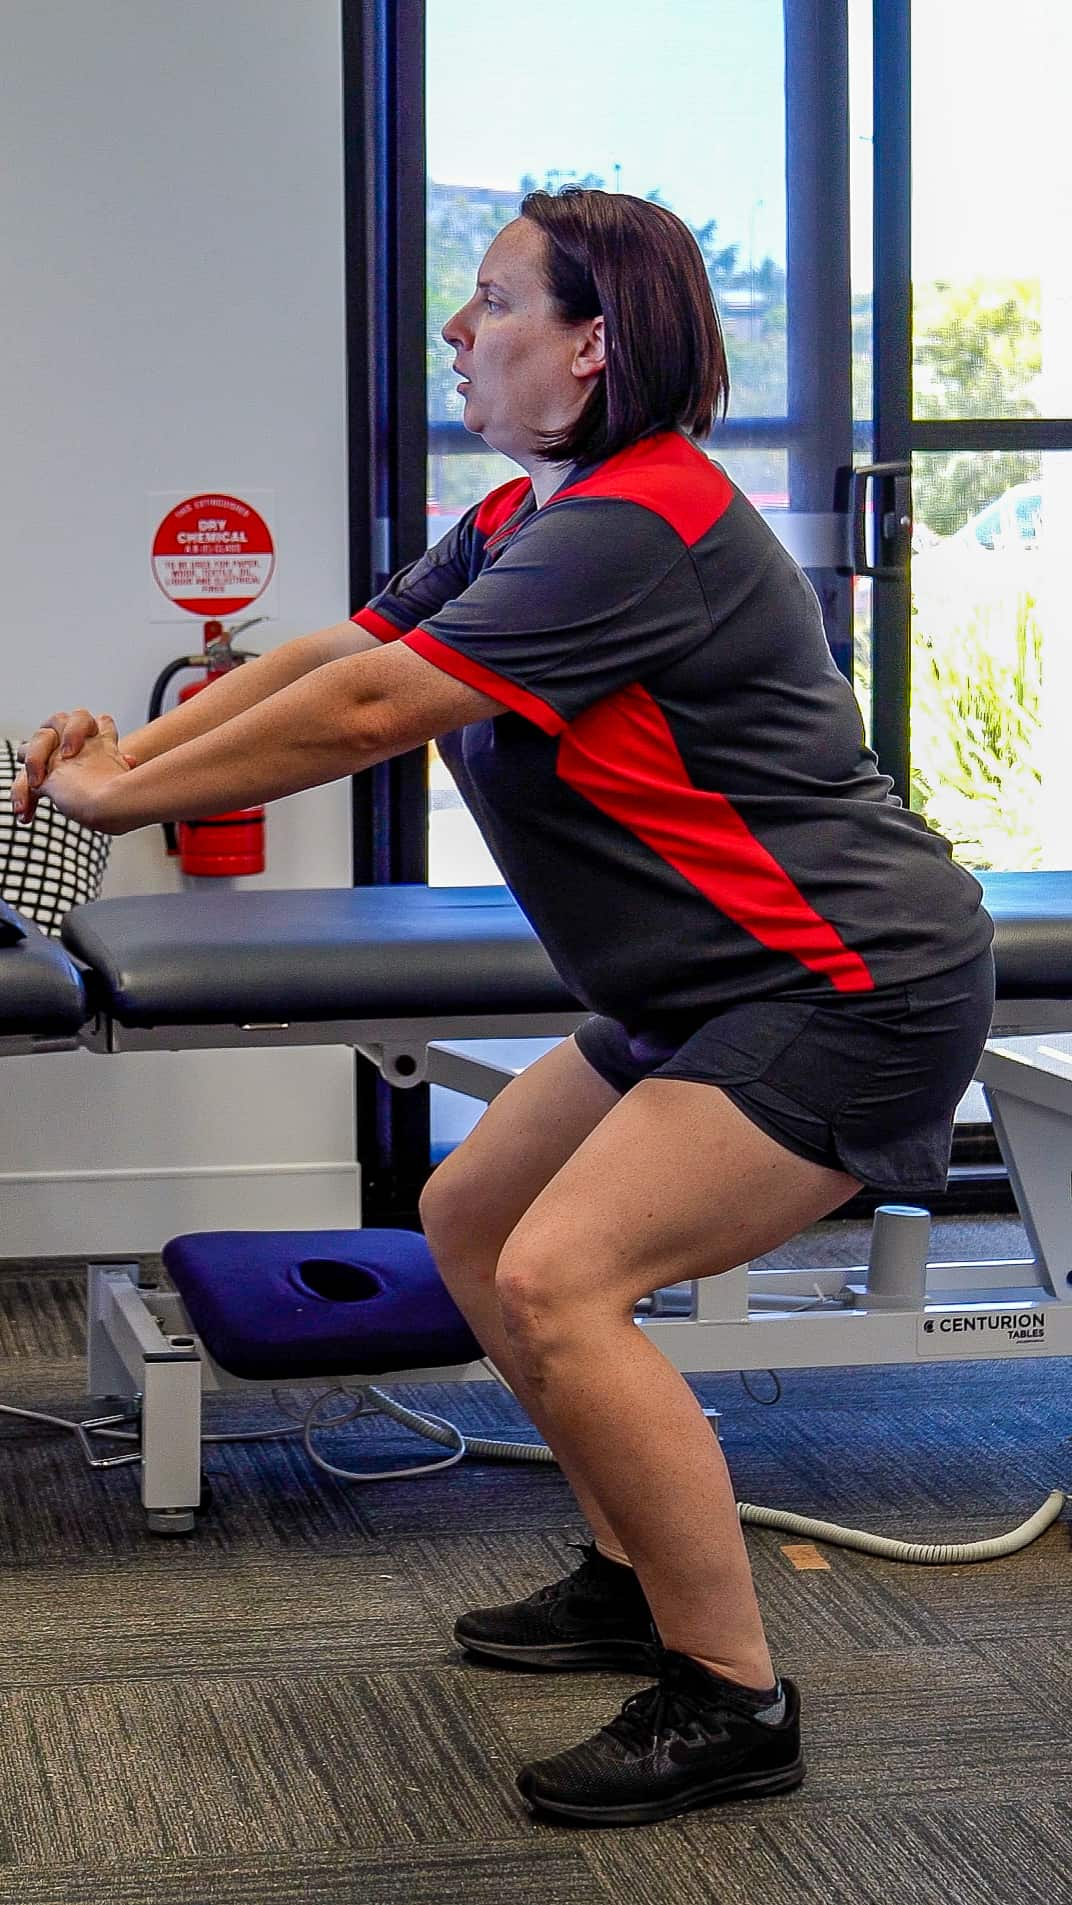 Client performing a squatting exercise to assist in her recovery.